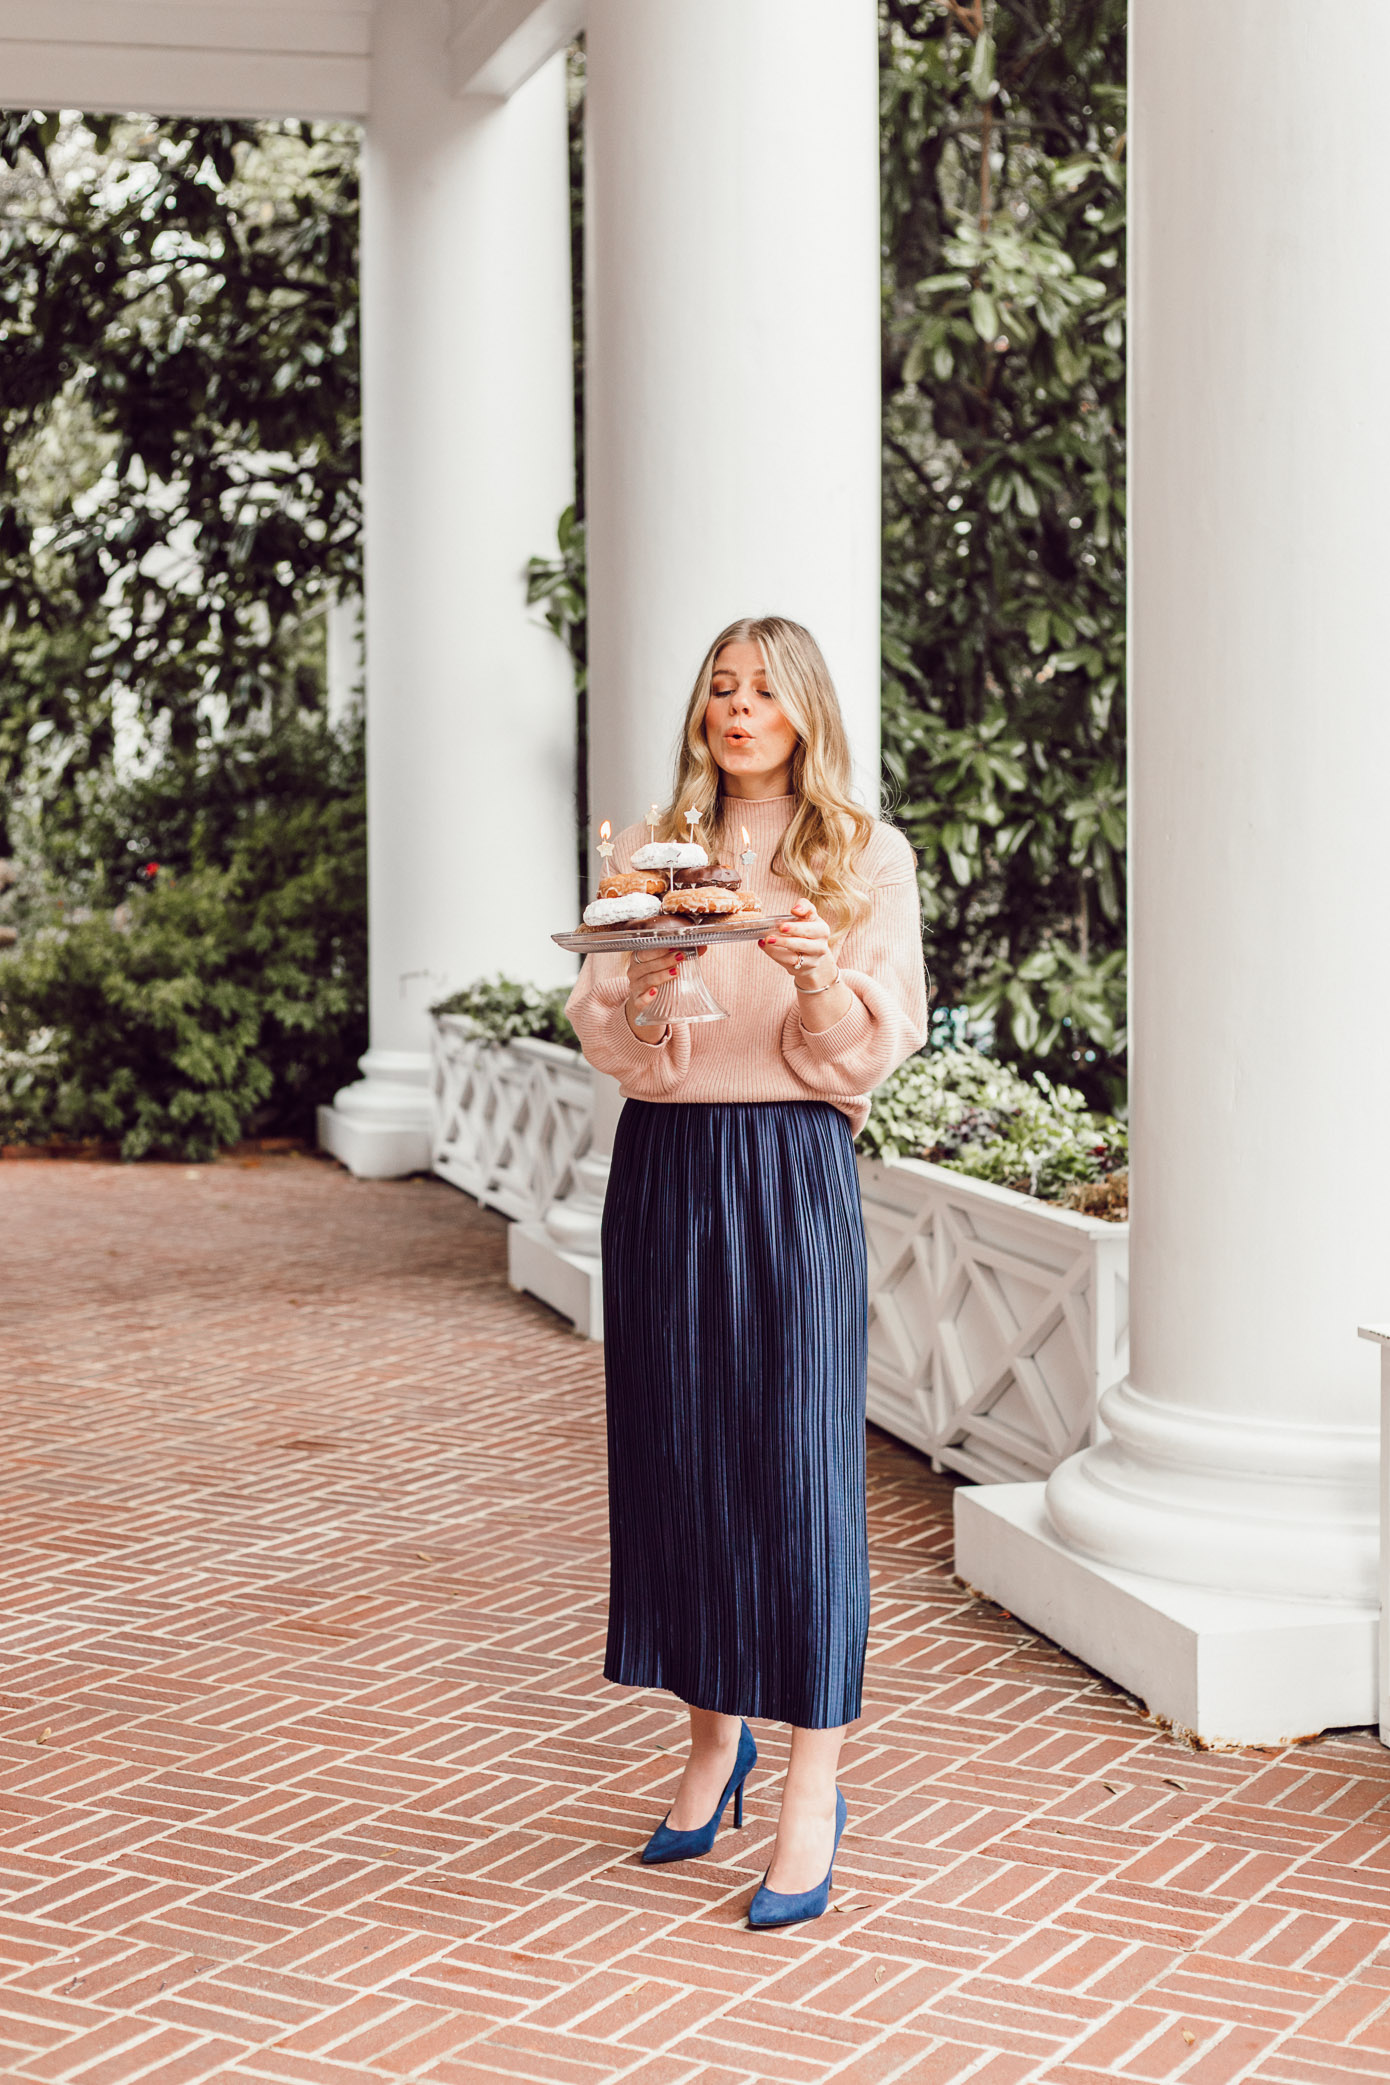 29 Life Lessons Learned featured on Louella Reese for her 29th Birthday | Tibi Plissé Midi Skirt, Line + Dot Blush Cropped Sweater